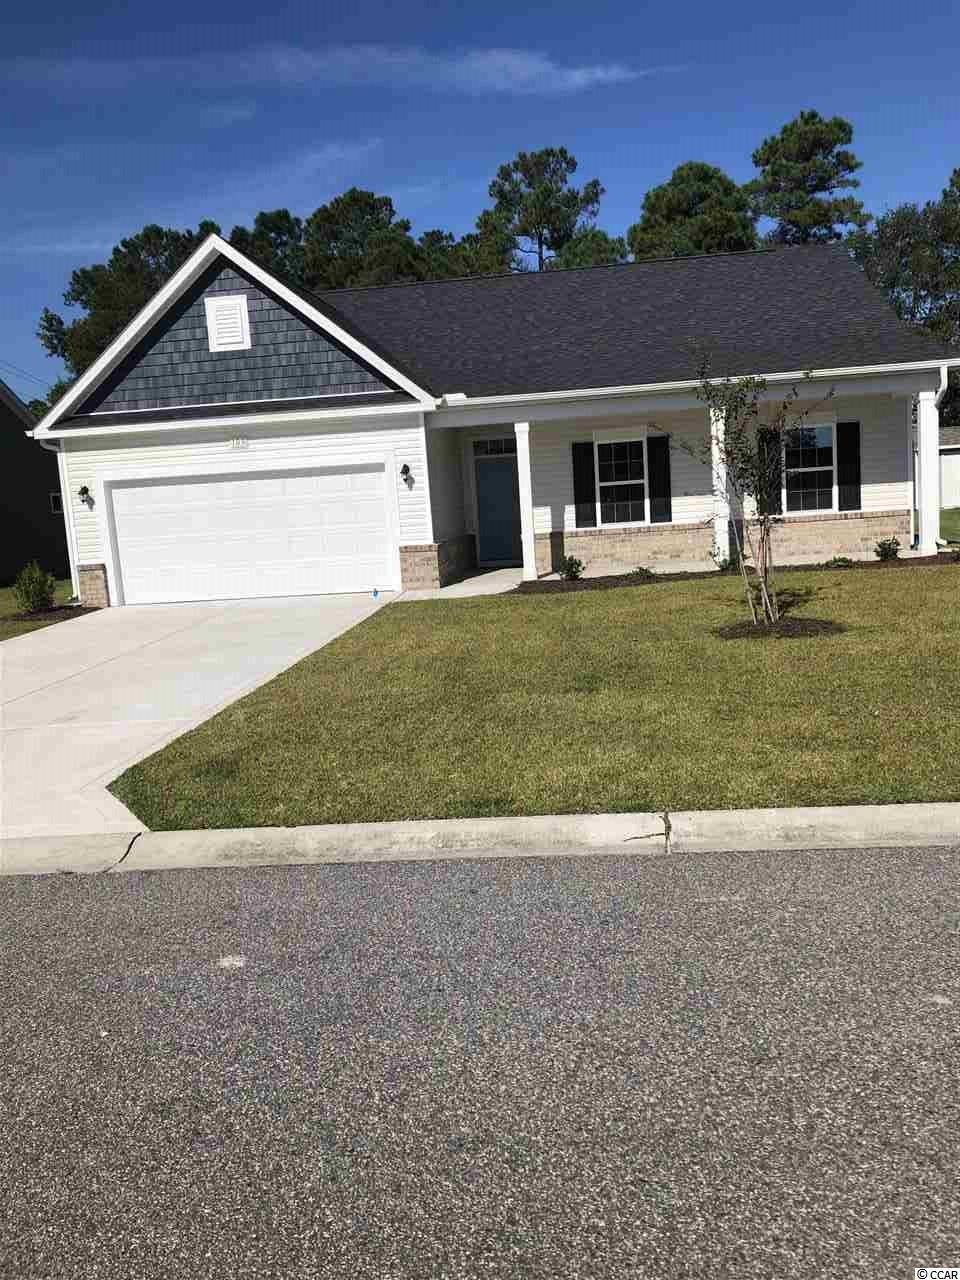 Pictures are of a similar, completed home. This home is our popular Frisco plan with 3 bedrooms, 2 baths, large open kitchen and family room and front and rear porches all on a 1/4 acre home sitebacking up to trees! Home will be complete August/September 2020!